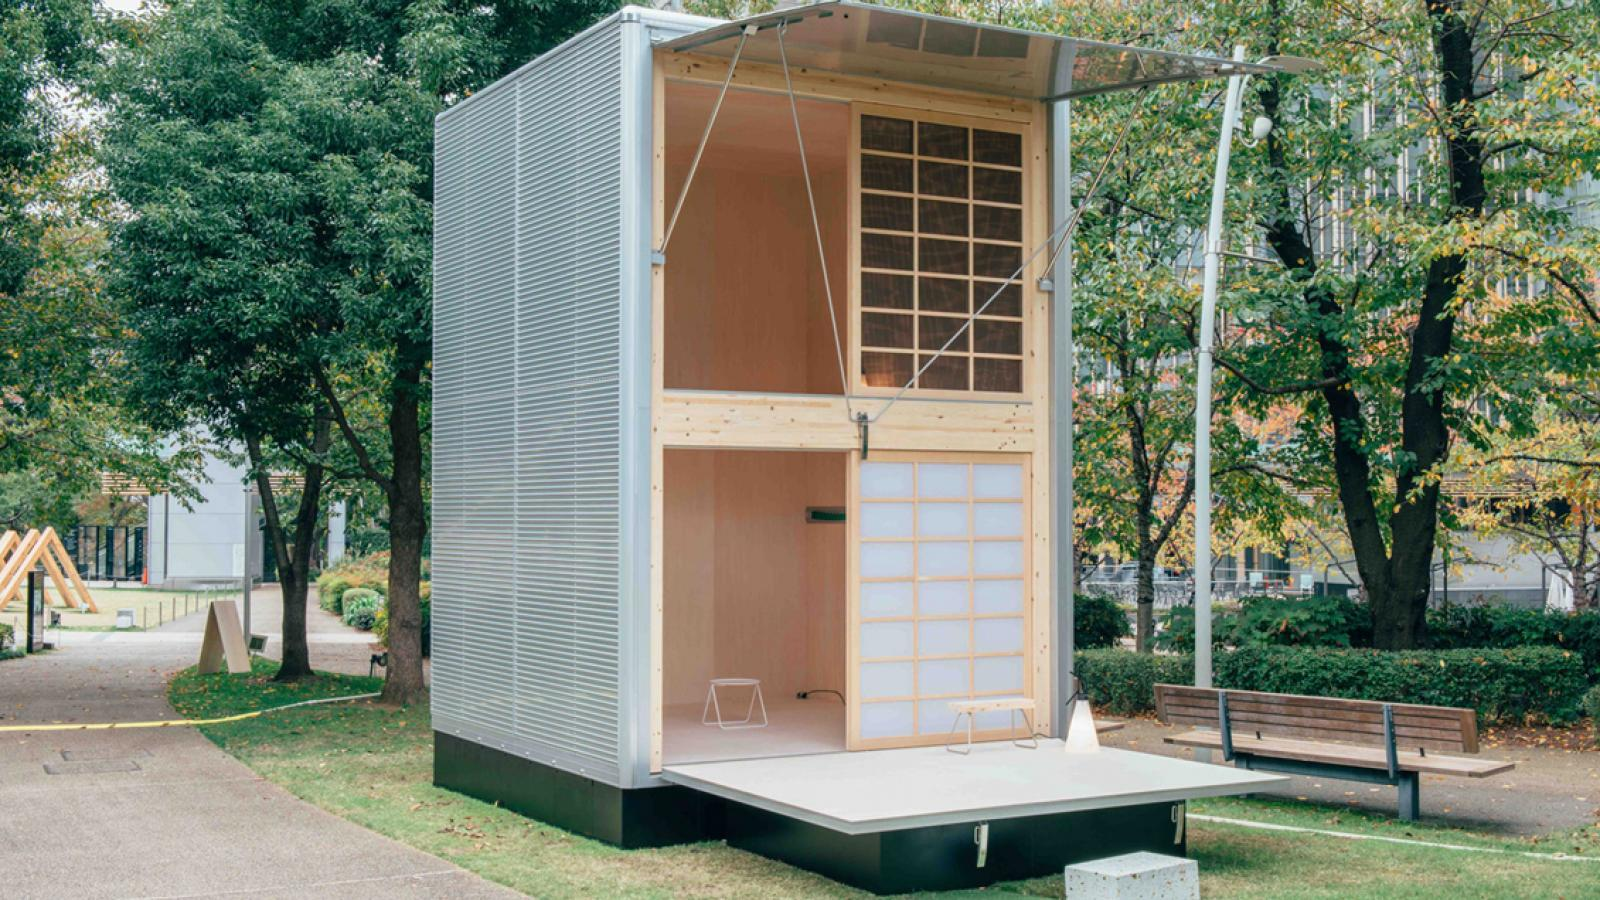 Ready-Constructed Huts by Muji